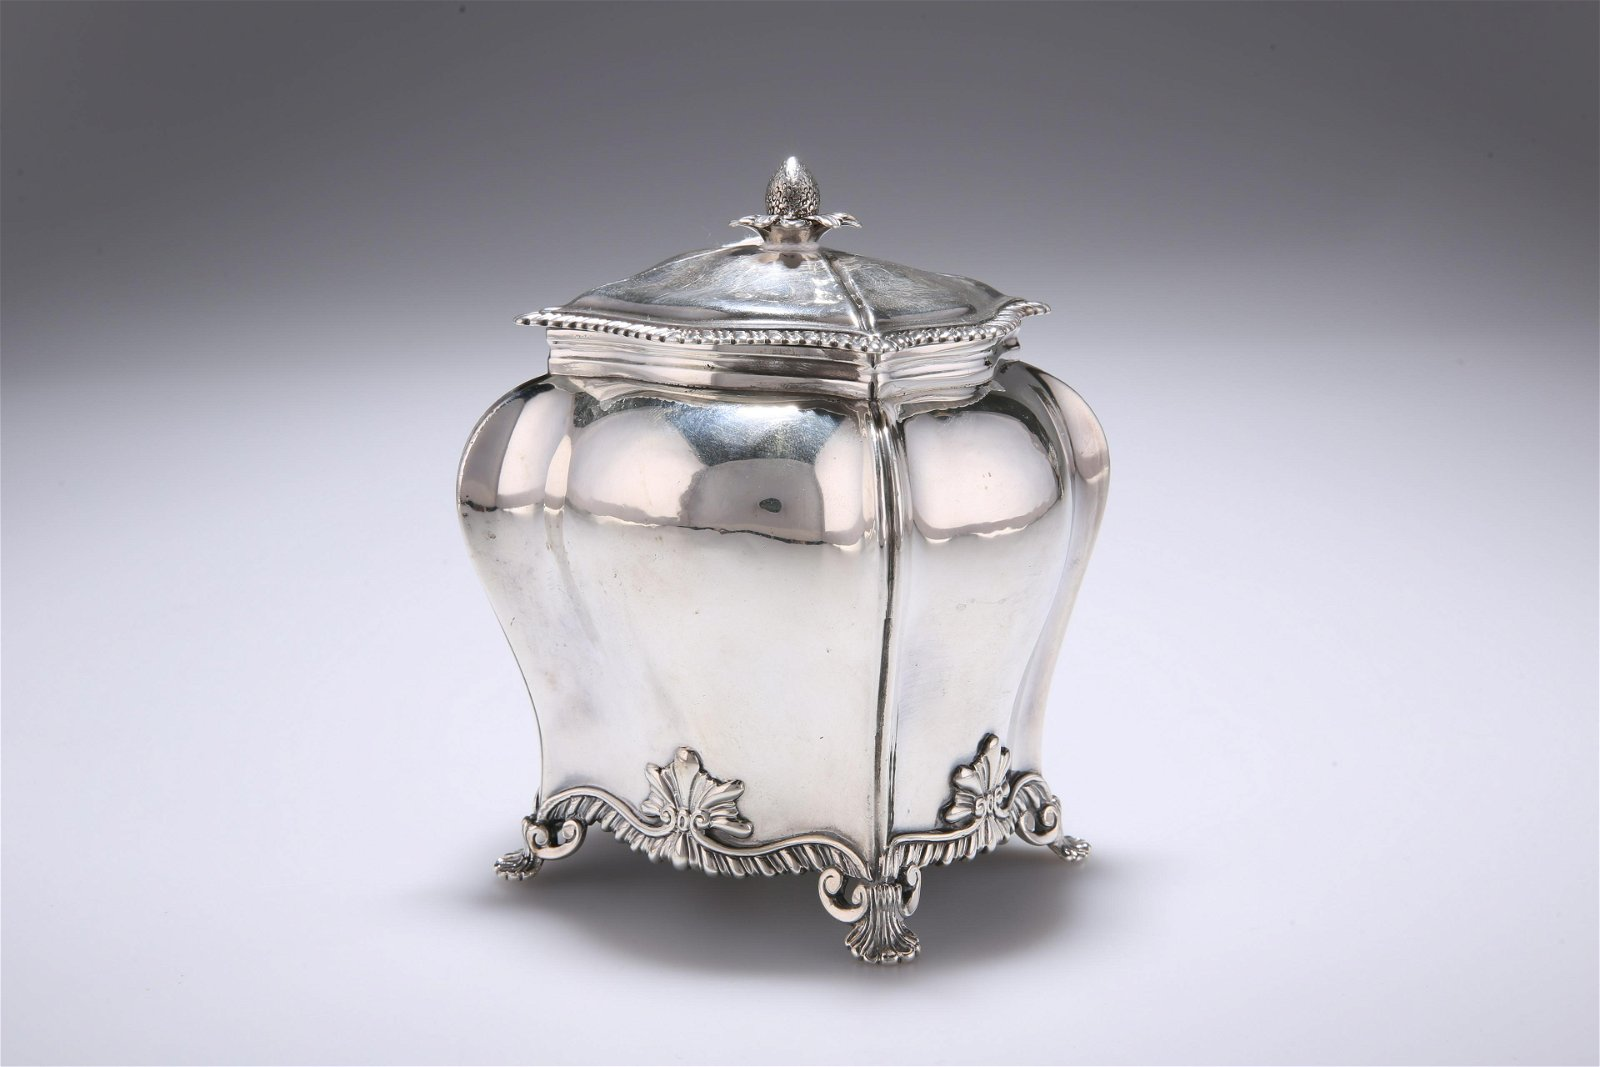 A GEORGE III SILVER TEA CADDY, by Daniel Smith & Robert